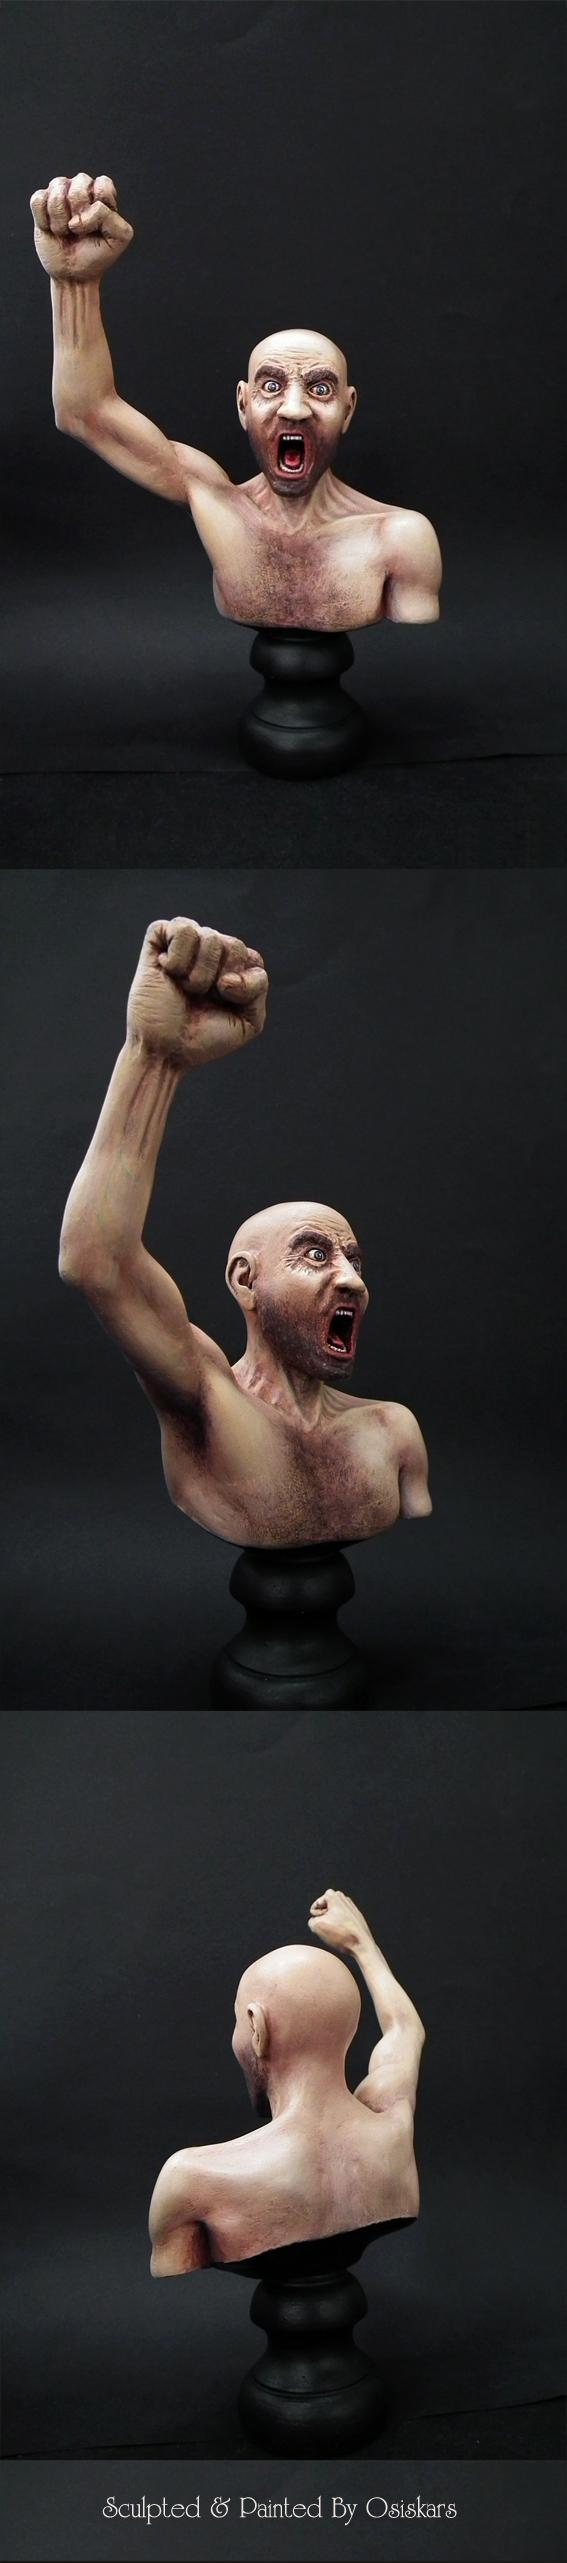 Angry, Arms, Beard, Bust, Chest Hair, Eyes, Fist, Head, Human, Iriss, Large Scale, Mouth, Skin, Stand